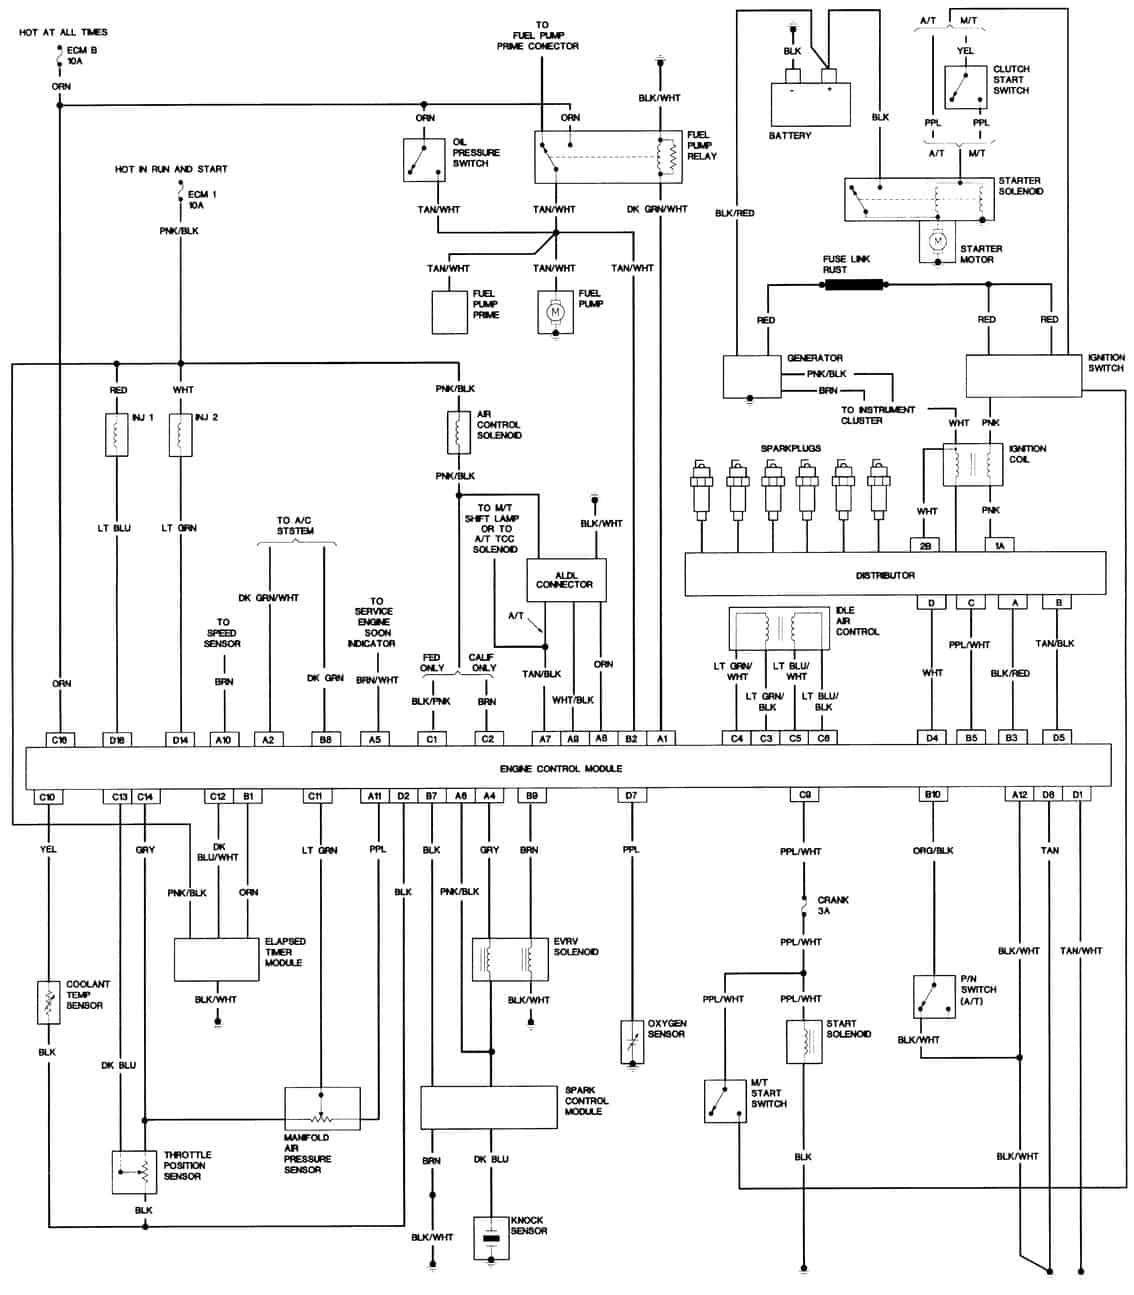 DIAGRAM] 1994 Chevrolet S10 Wiring Diagram FULL Version HD Quality Wiring  Diagram - EBOOKAFRICA.BORGOCONTESSA.ITebookafrica.borgocontessa.it